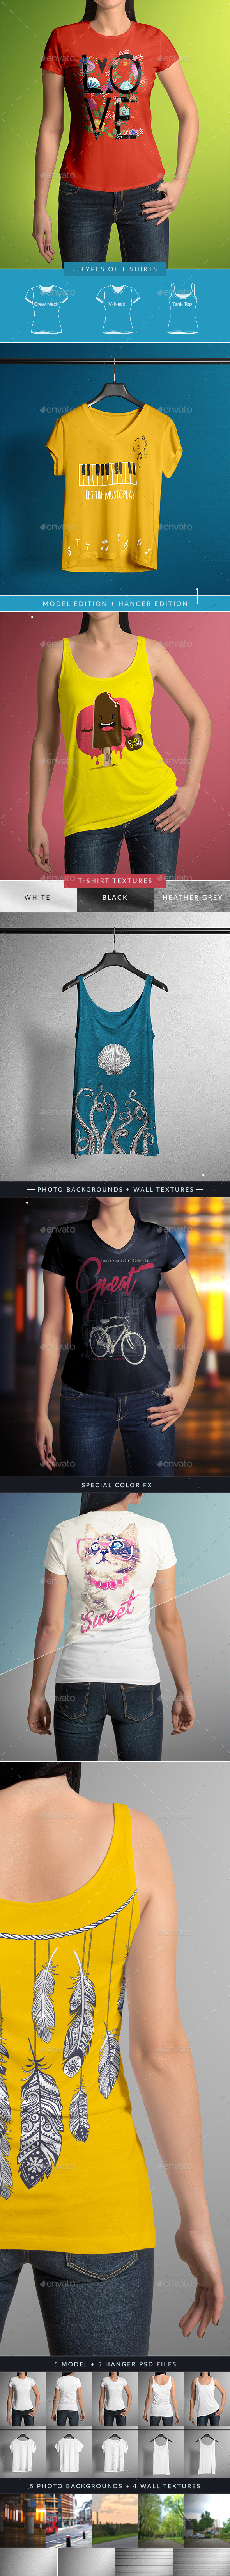 T-Shirt Mock-Up Female Model / Classic Edition